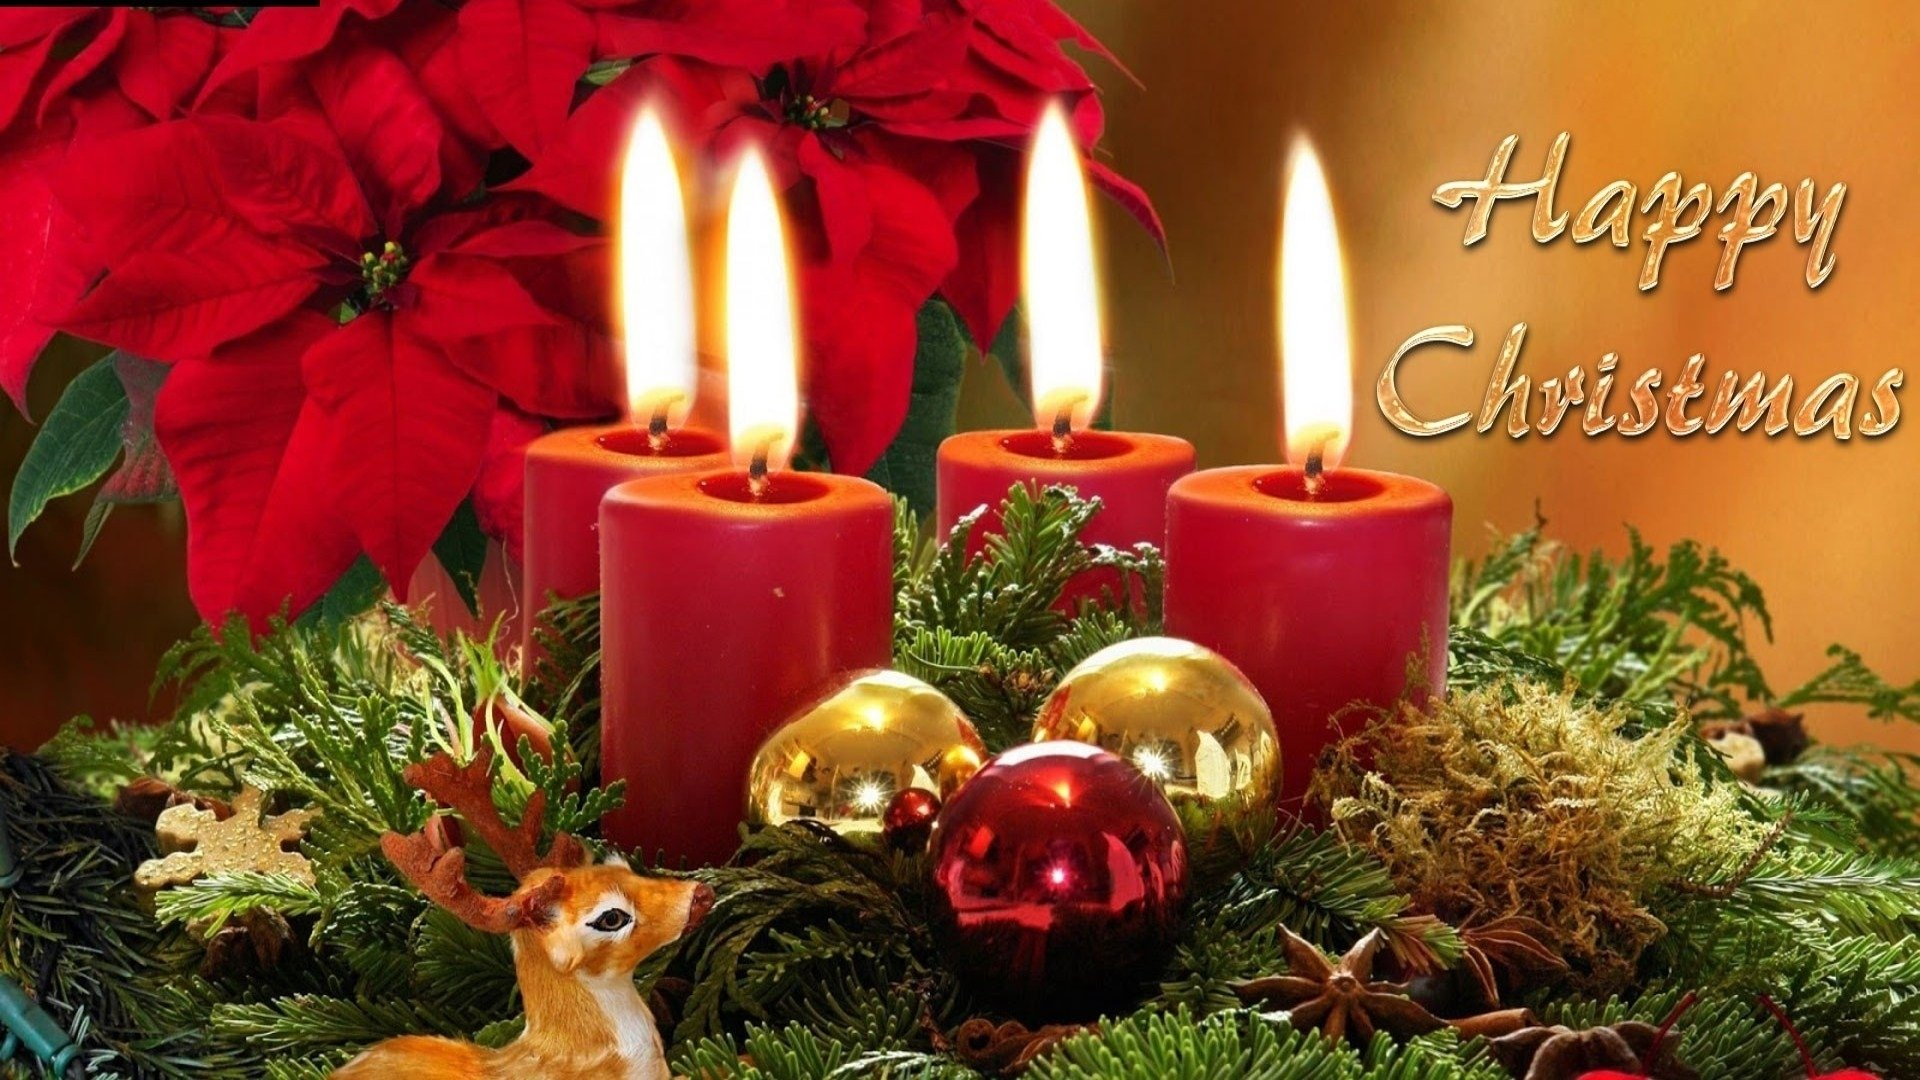 Holiday - Christmas  Decoration Candle Merry Christmas Flower Reindeer Wallpaper